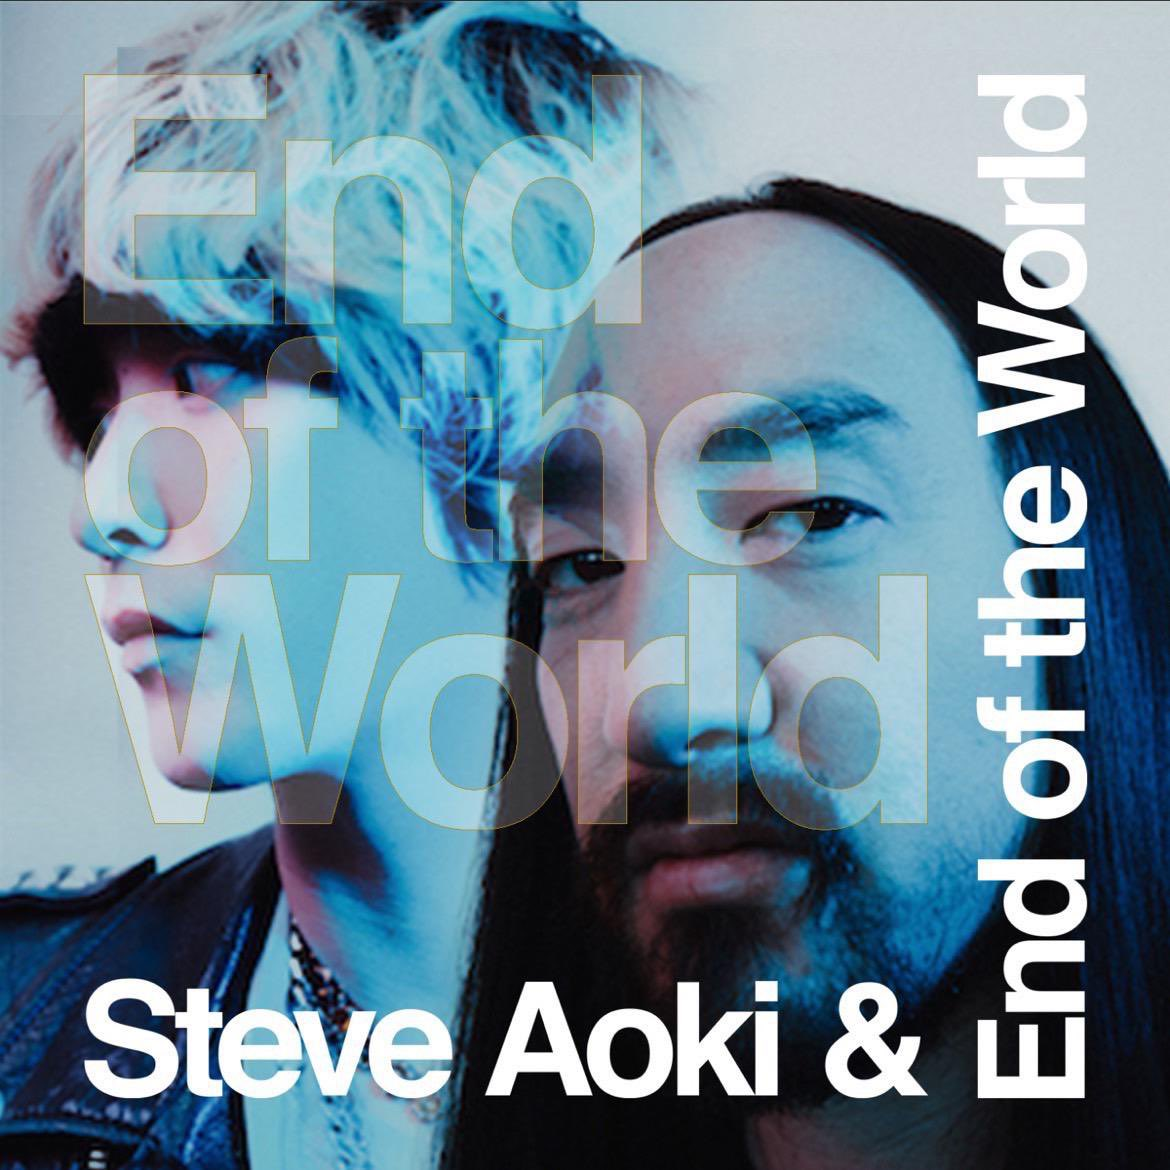 END OF THE WORLD @EndOfTheWorld x @steveaoki Out this Friday 10.15🍾🍾